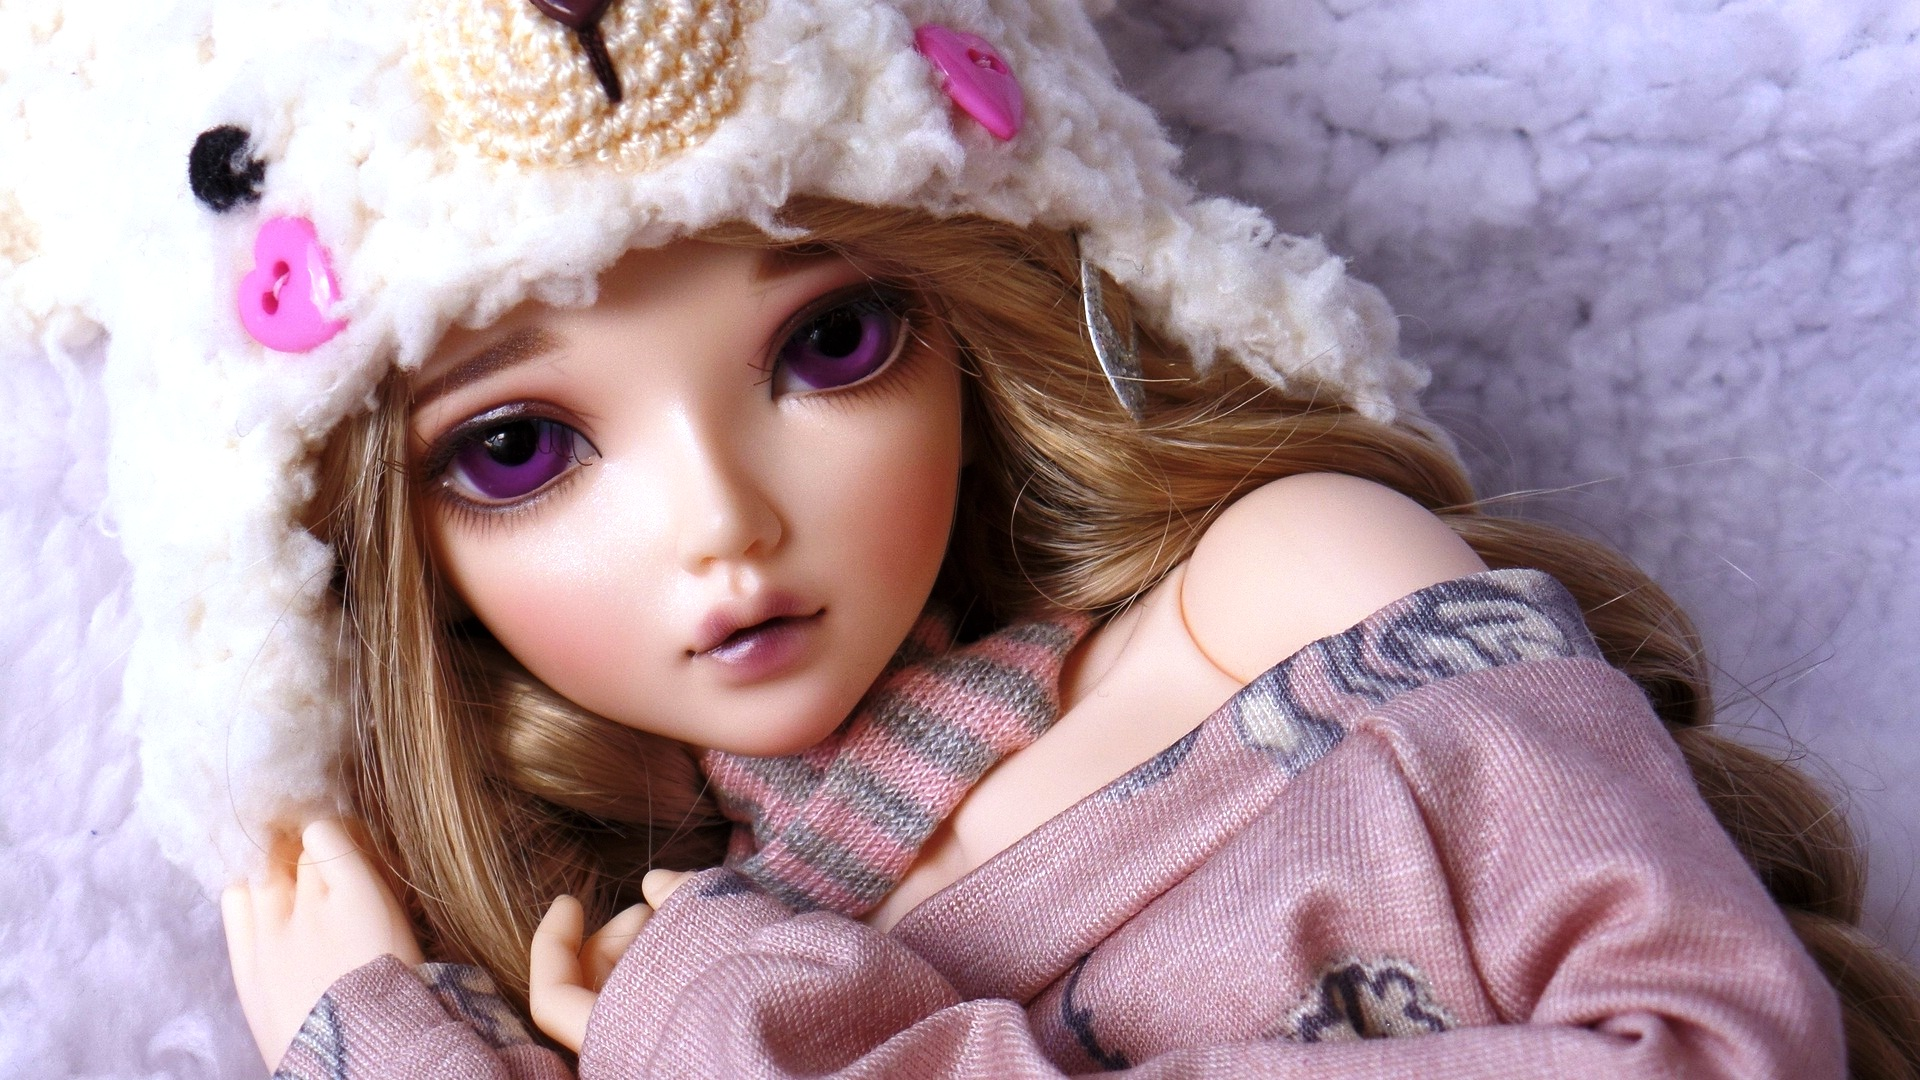 Cute Doll Wallpaper For Dp Doll Backgrounds Free Download Pixelstalk Net